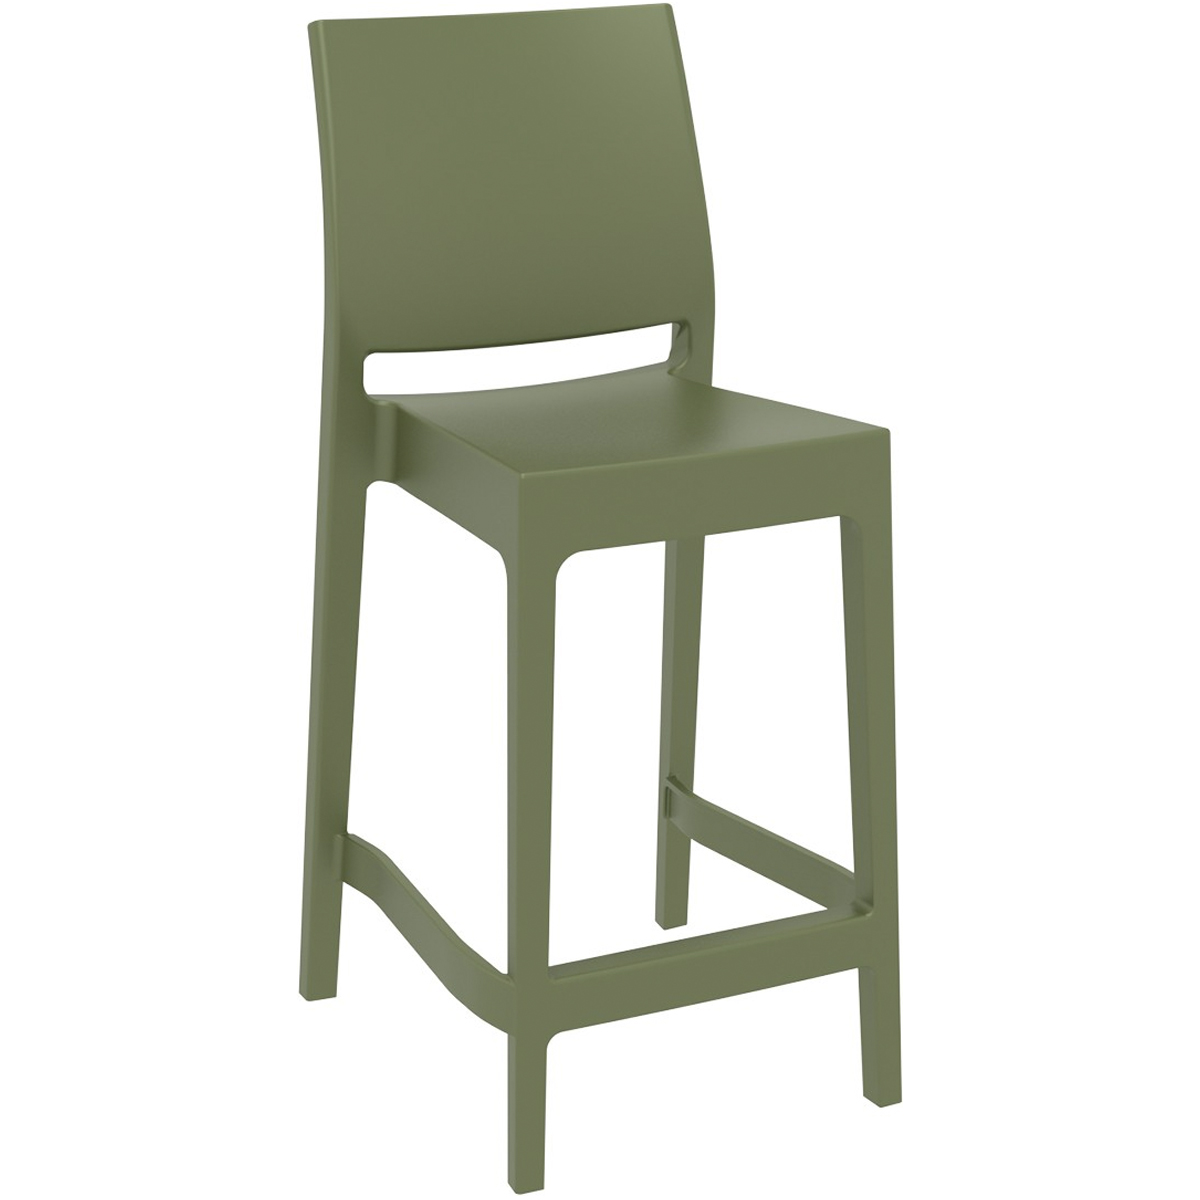 Image of: Neo 200100e Stackable Plastic Outdoor Bar Stool Bar Chair Neo Horeca Furniture